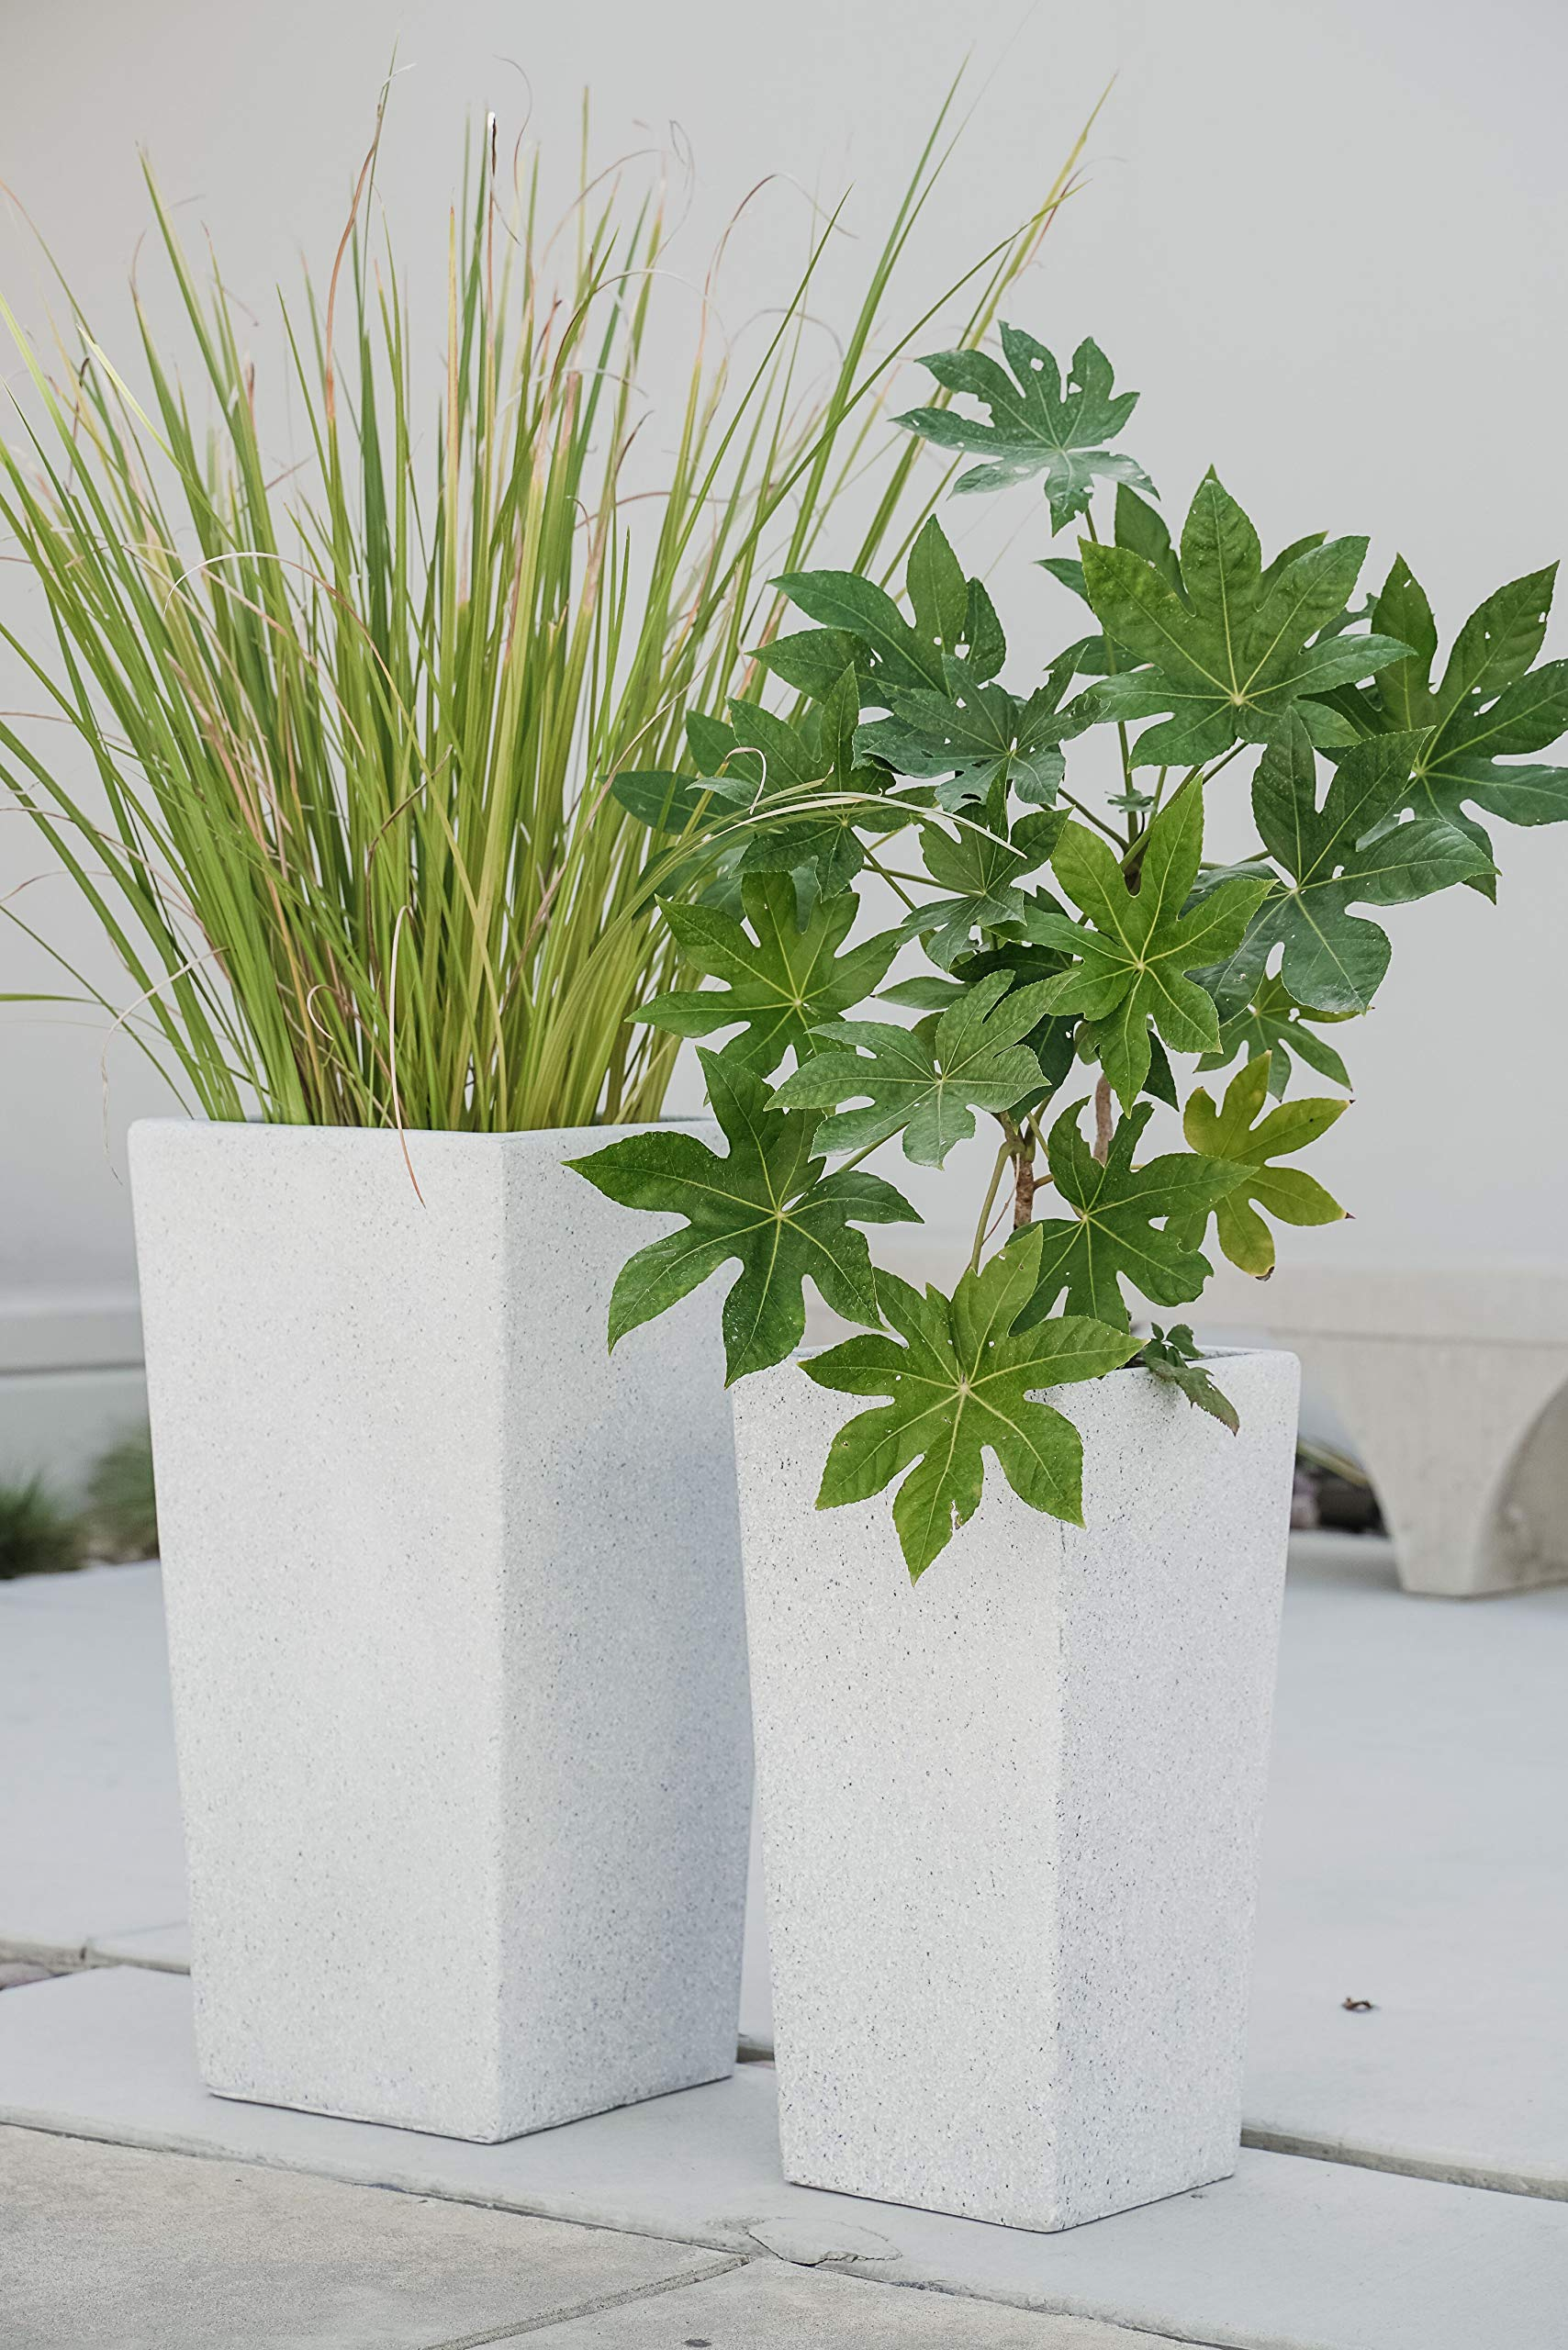 XBrand Set of 2 Different Sizes Modern Nested Tall Square Concrete Planter, 29 Inch & 24 Inch, Grey